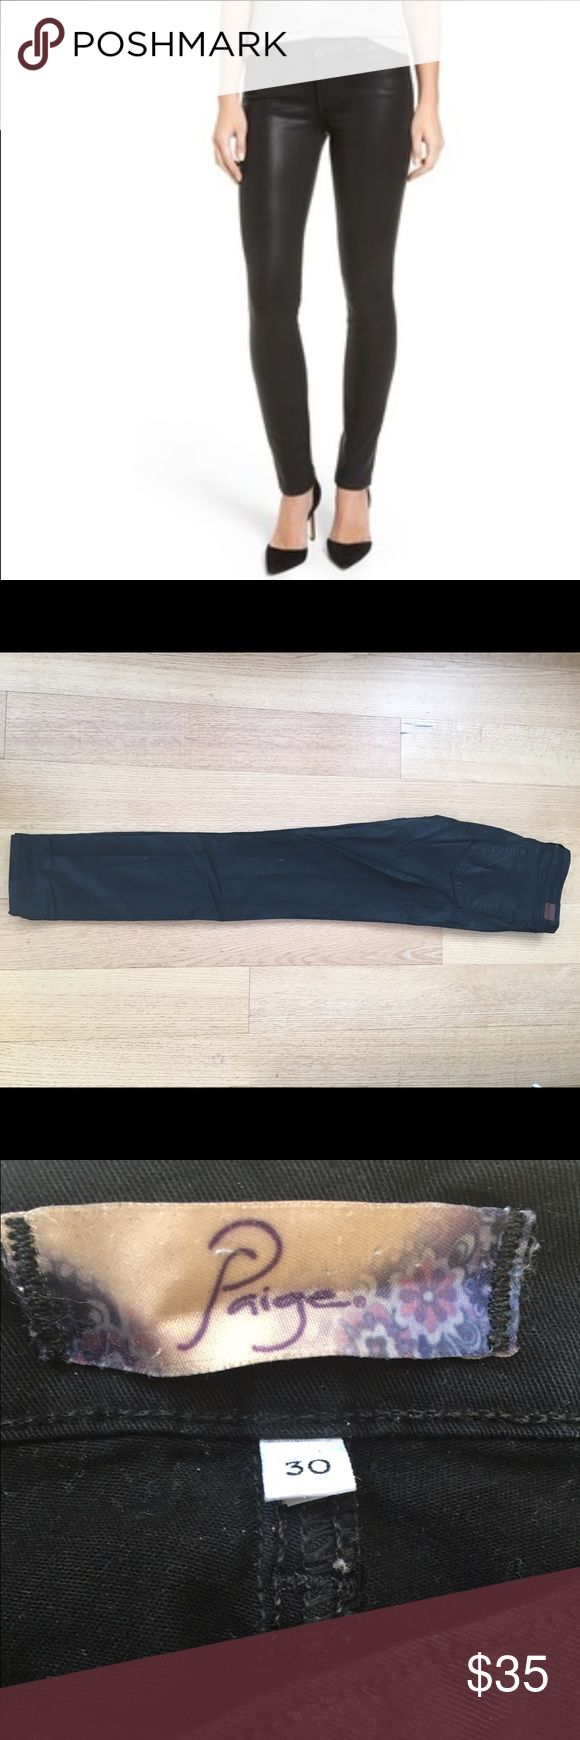 """Paige Denim Jeans """"Peg Skinny"""" GREAT CONDITION, BARELY WORN.- PAIGE PREMIUM DENIM """"PEG SKINNY"""" MID RISE SKINNY JEANS. IN """"WJ283 - PANDORA"""" - A NICE BLACK SHINY COLOR.   98% COTTON, 2% ELASTANE, SOFT, COMFORTABLE AND STRETCH DENIM. ZIP FLY, MID RISE, SKINNY FIT. Paige Jeans Jeans Skinny"""